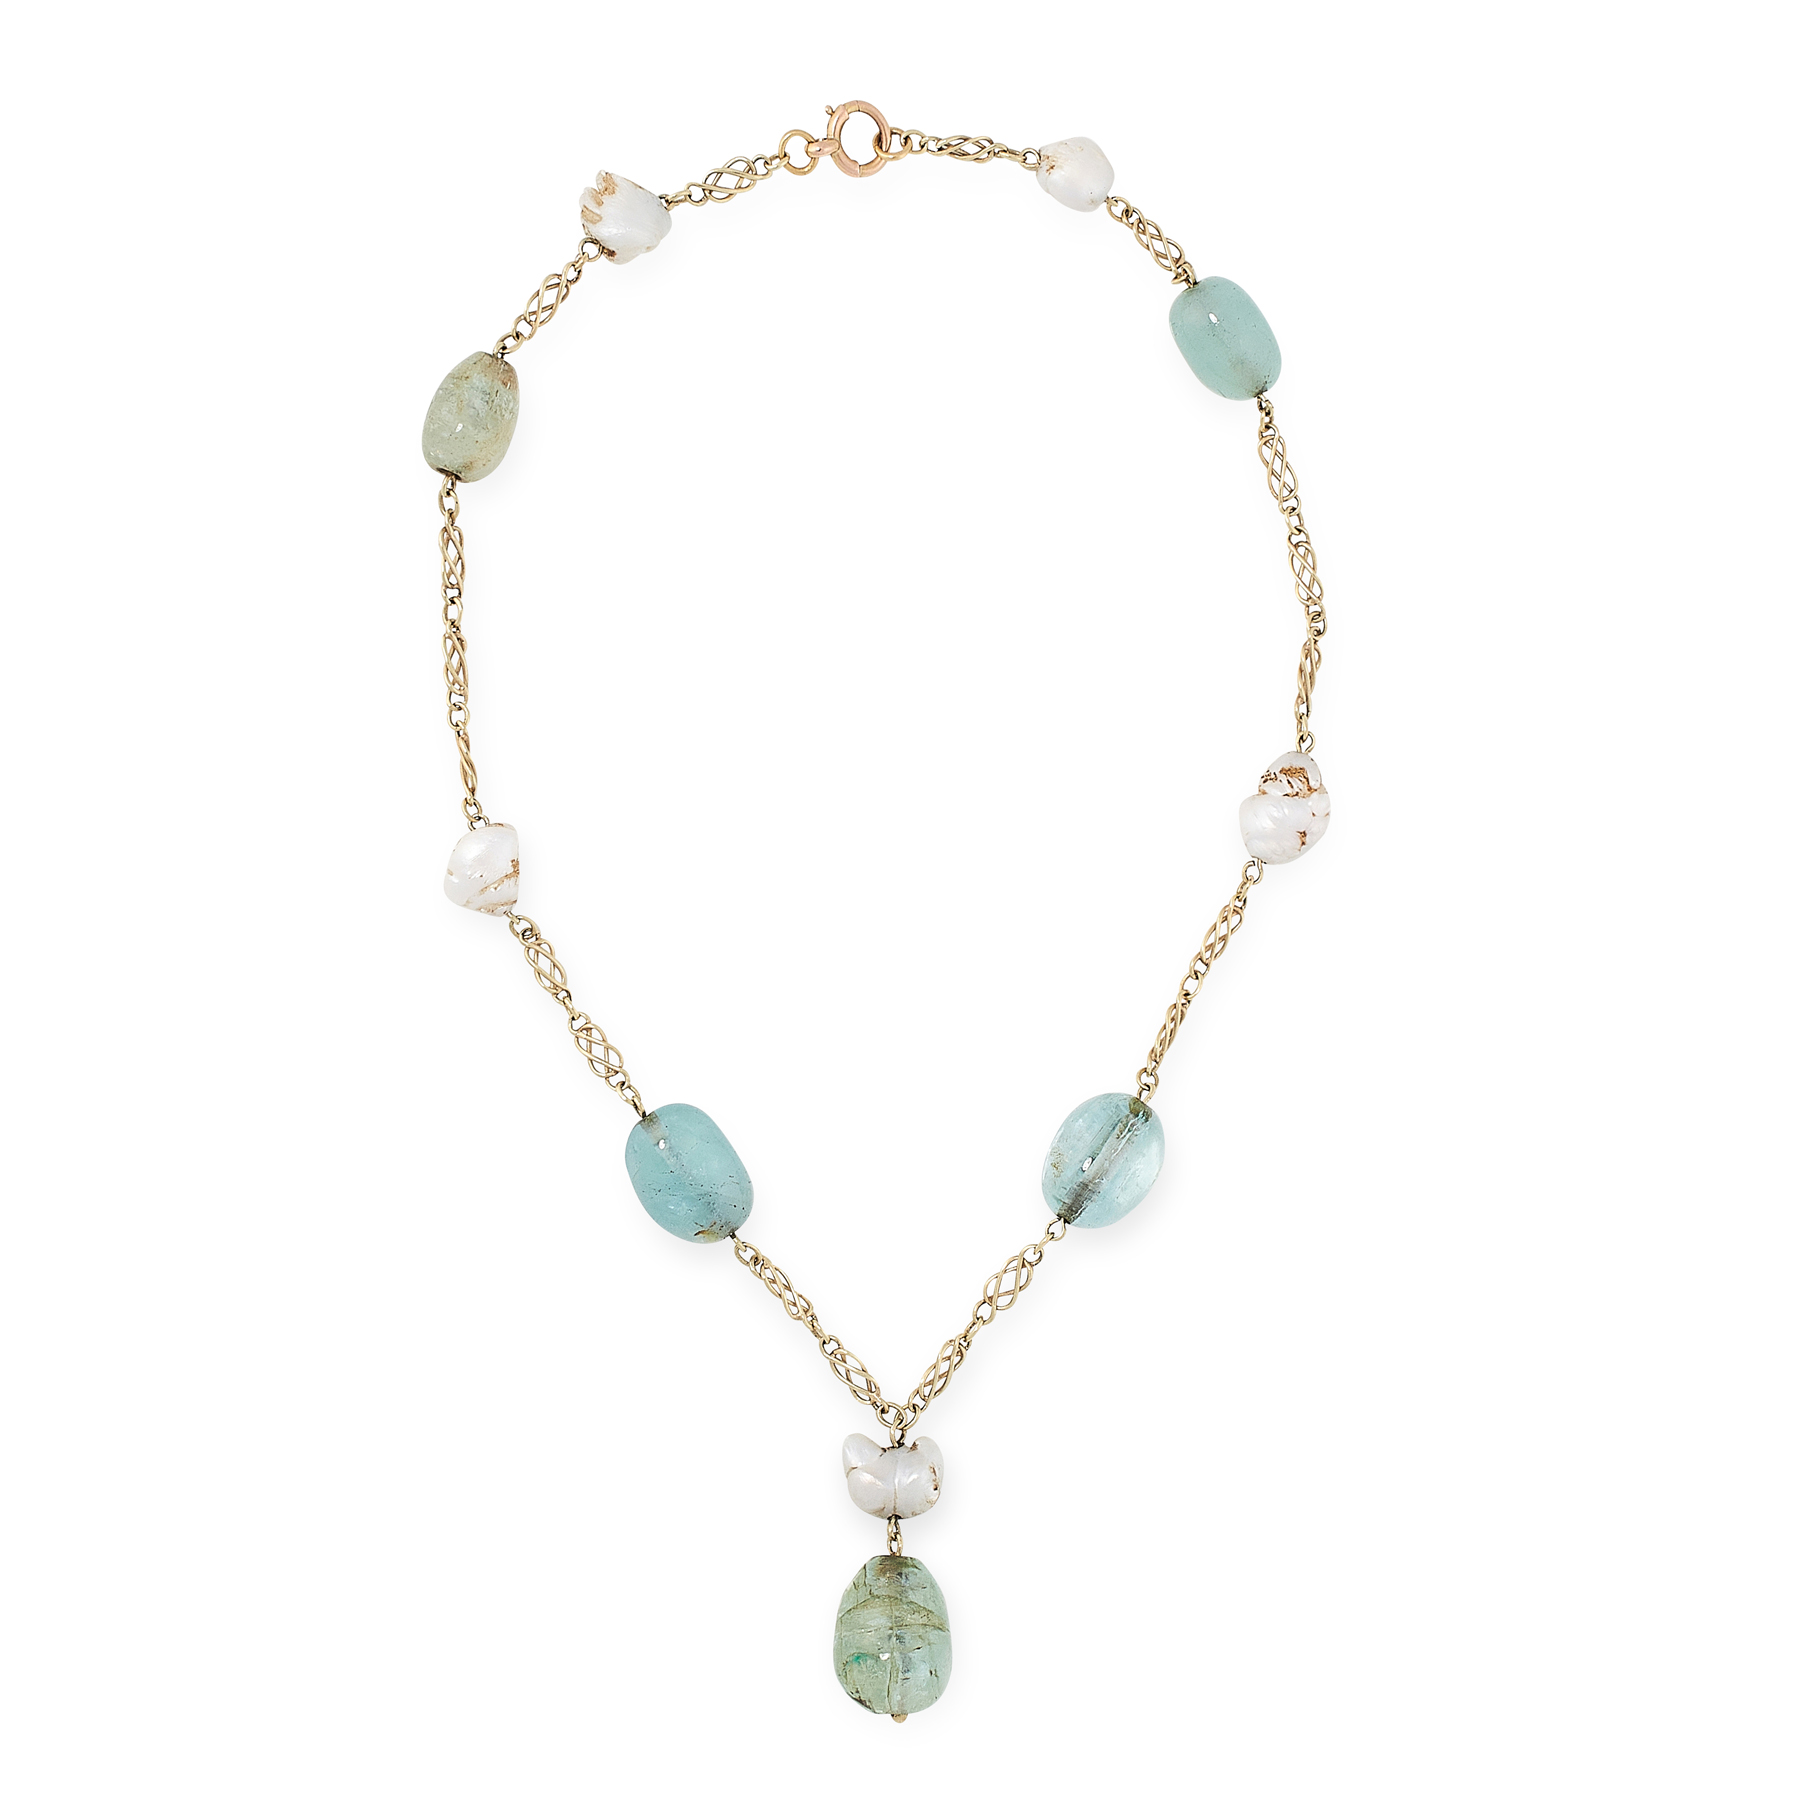 AN EMERALD, AQUAMARINE AND NATURAL PEARL NECKLACE in yellow gold, set with polished emerald and